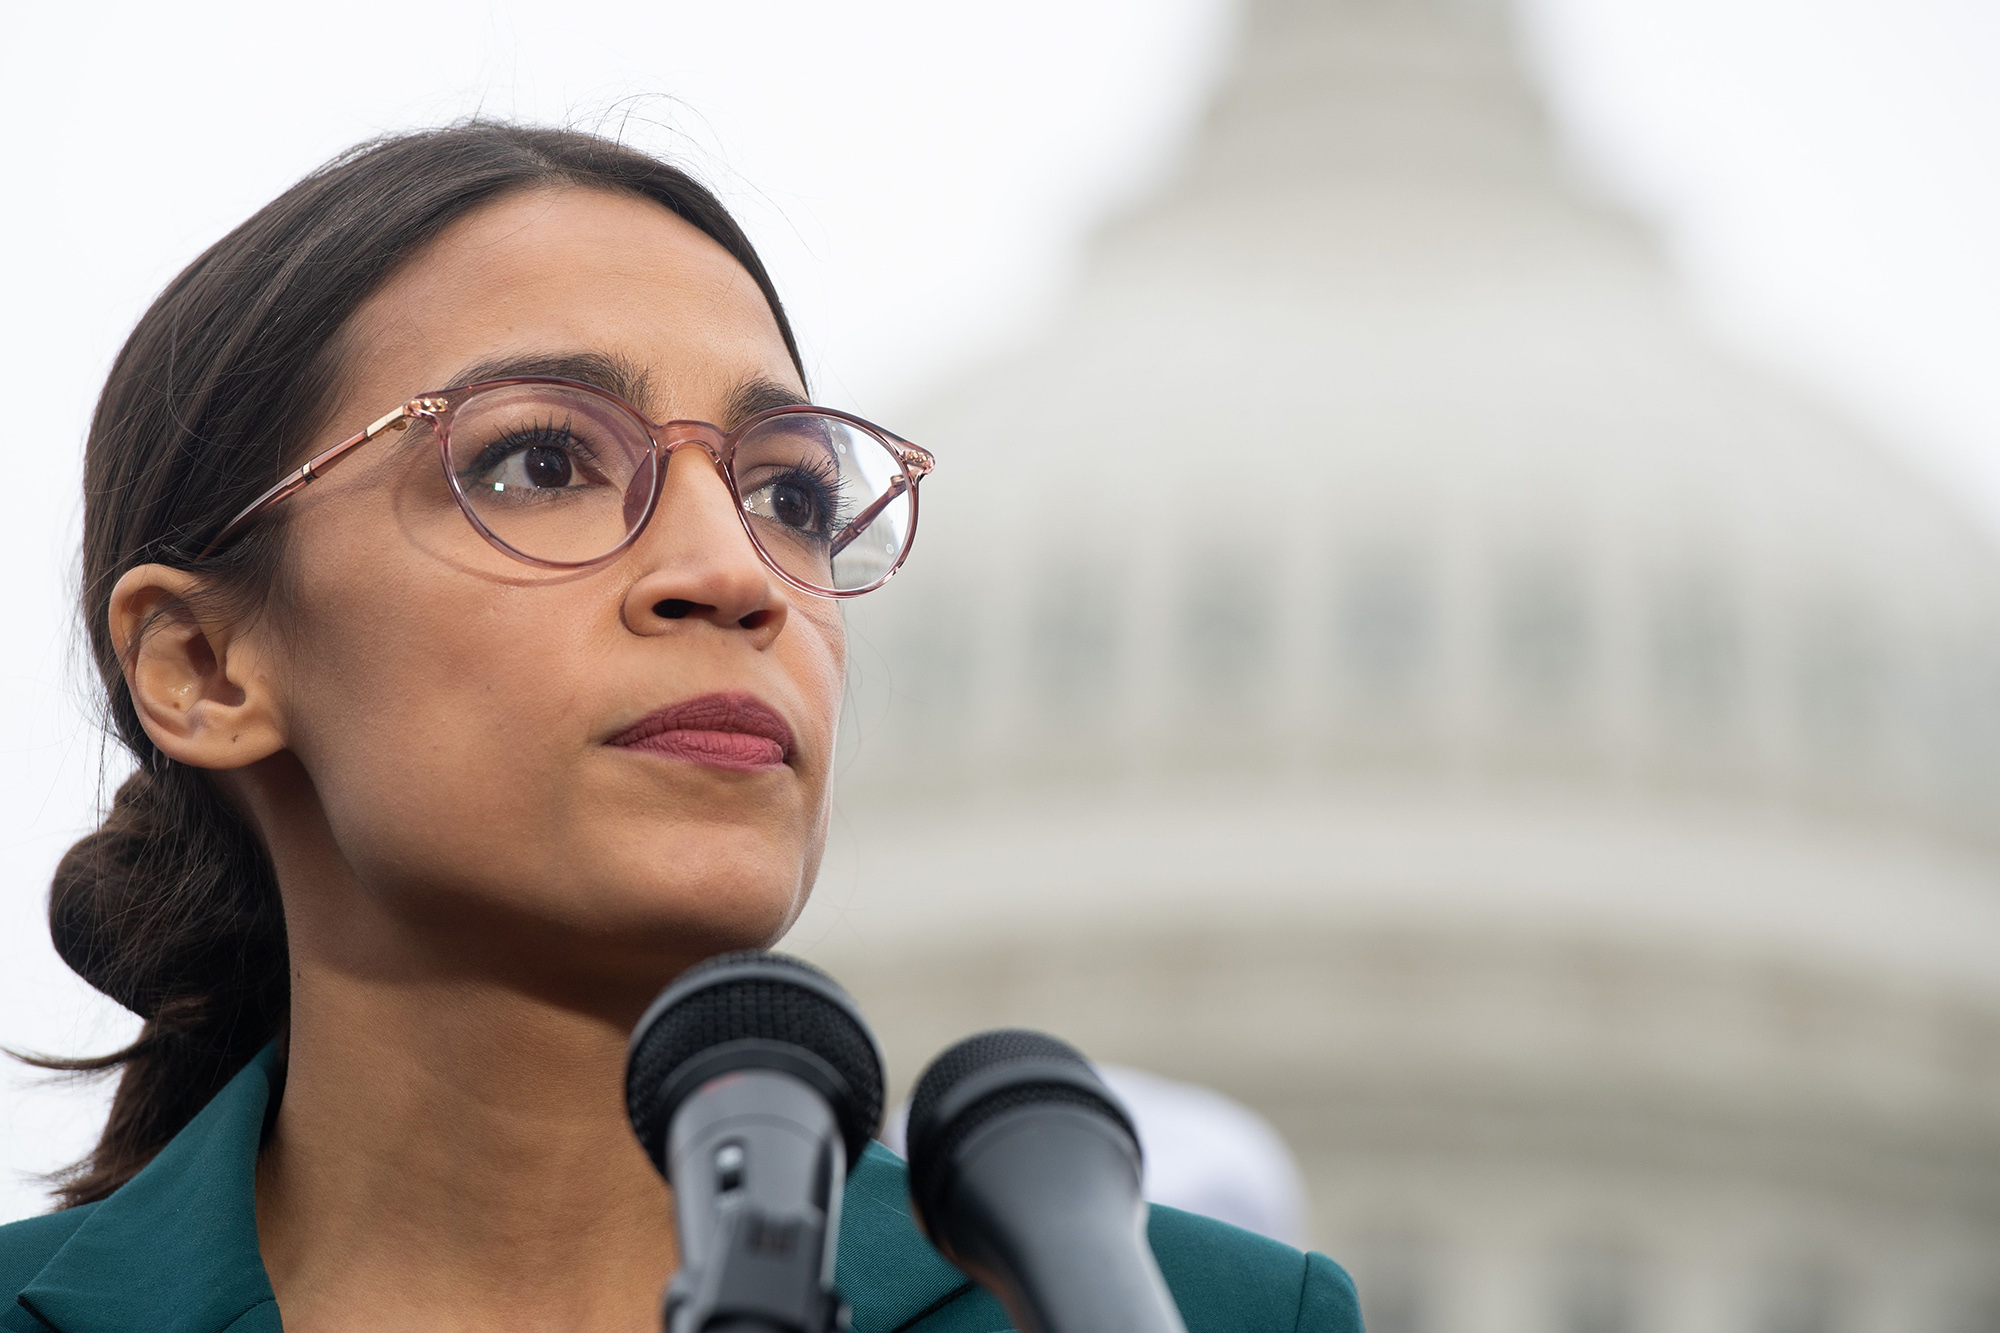 AOC defends 'defund the police' mantra after Dem losses